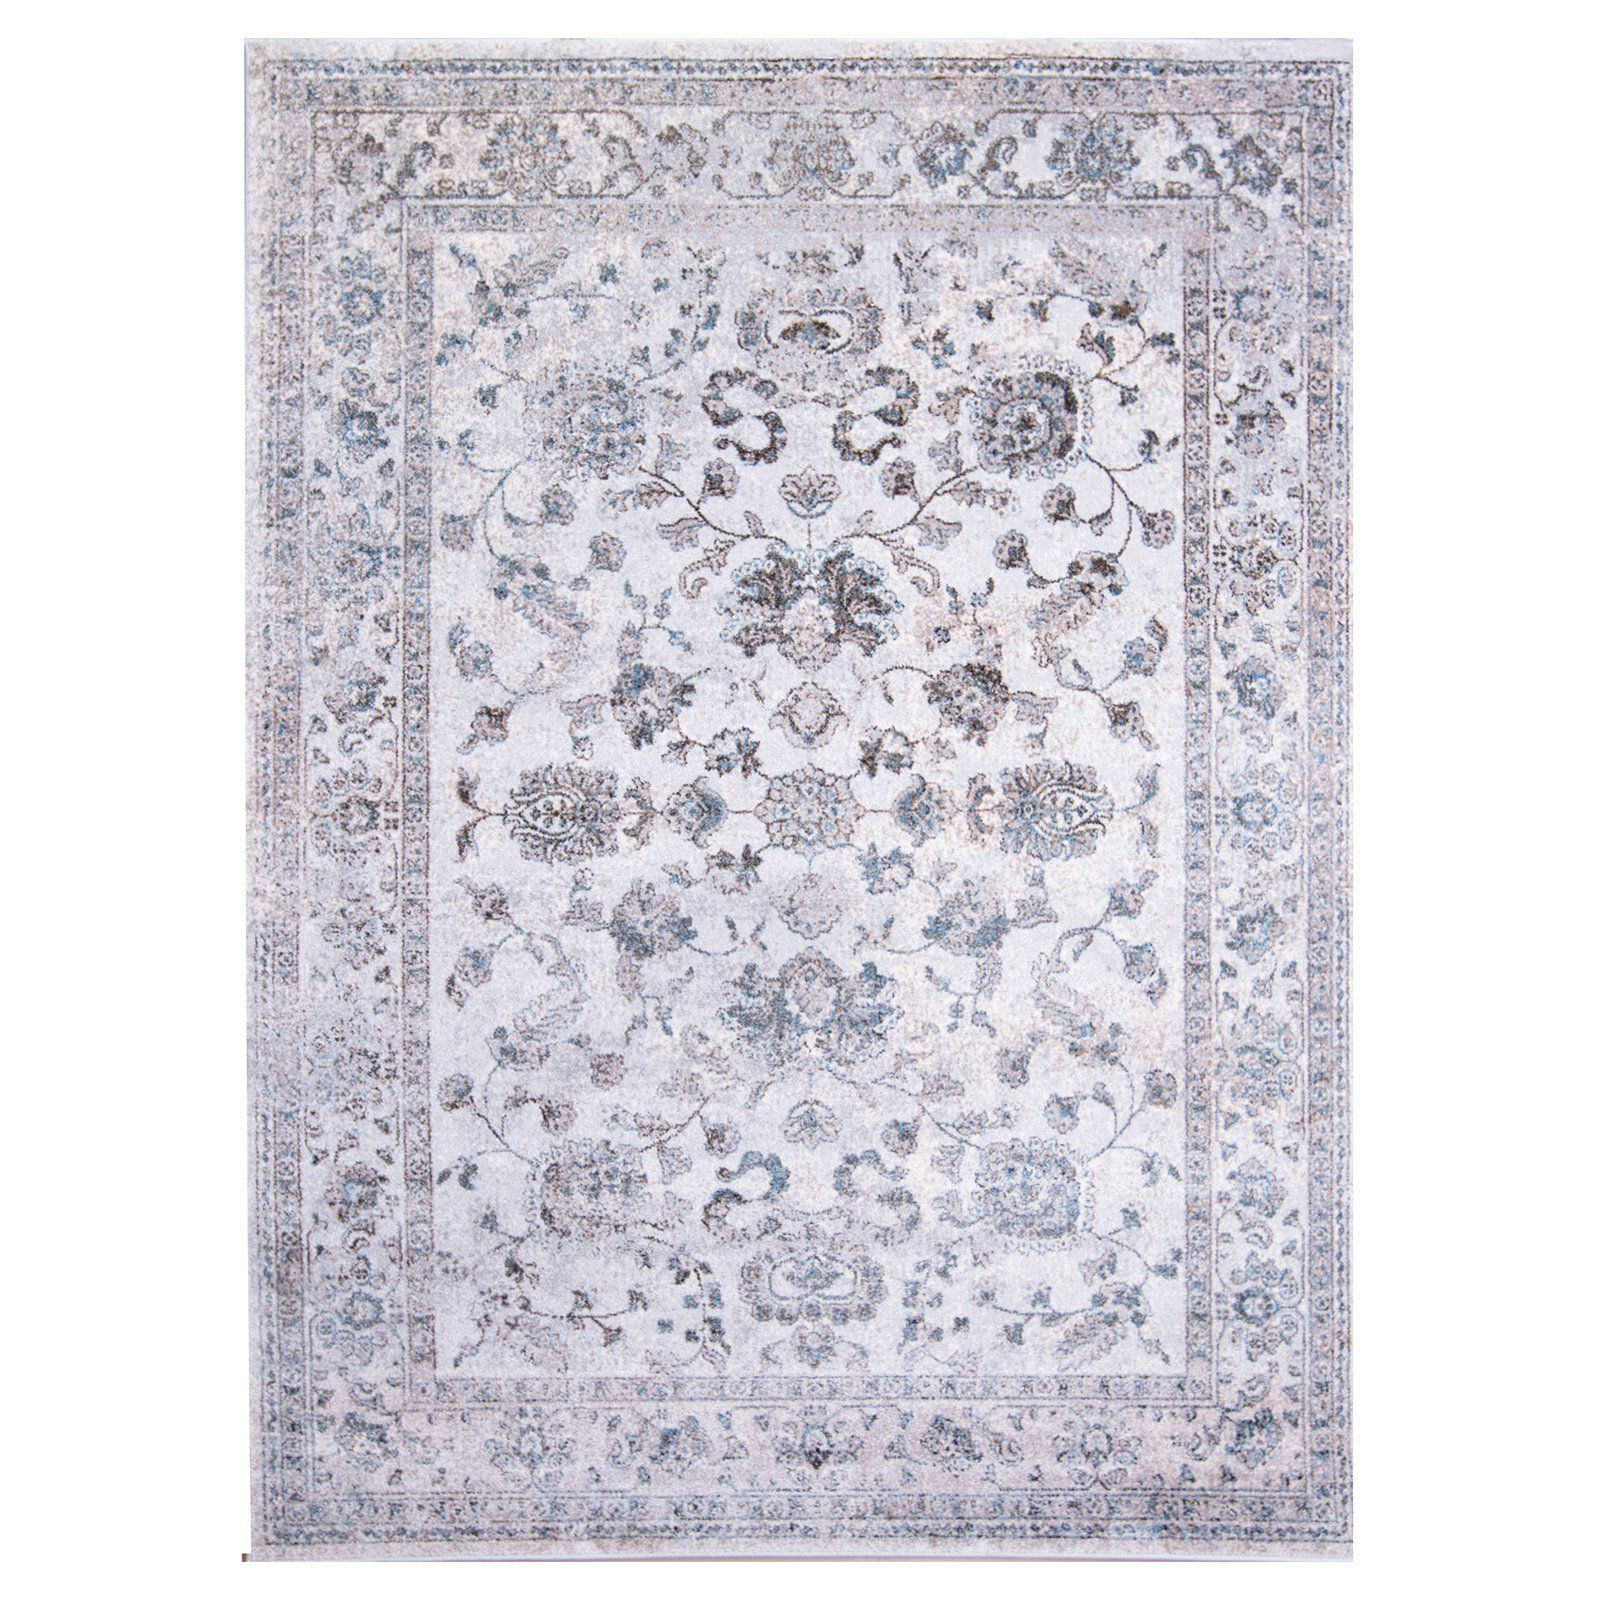 Home Dynamix Denim 1201 Indoor Area Rug | from hayneedle.com